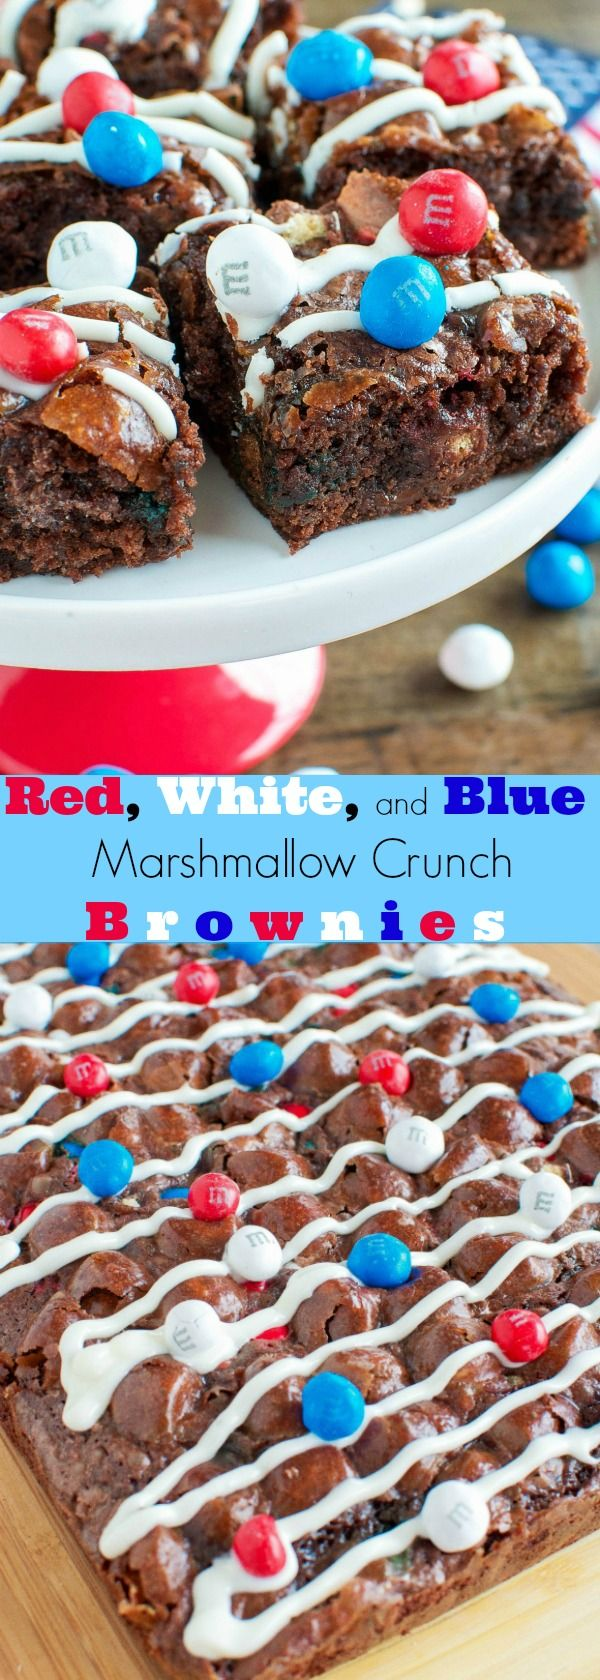 Red, White, and Blue Dessert Idea - Patriotic Marshmallow Crunch Brownies! ad